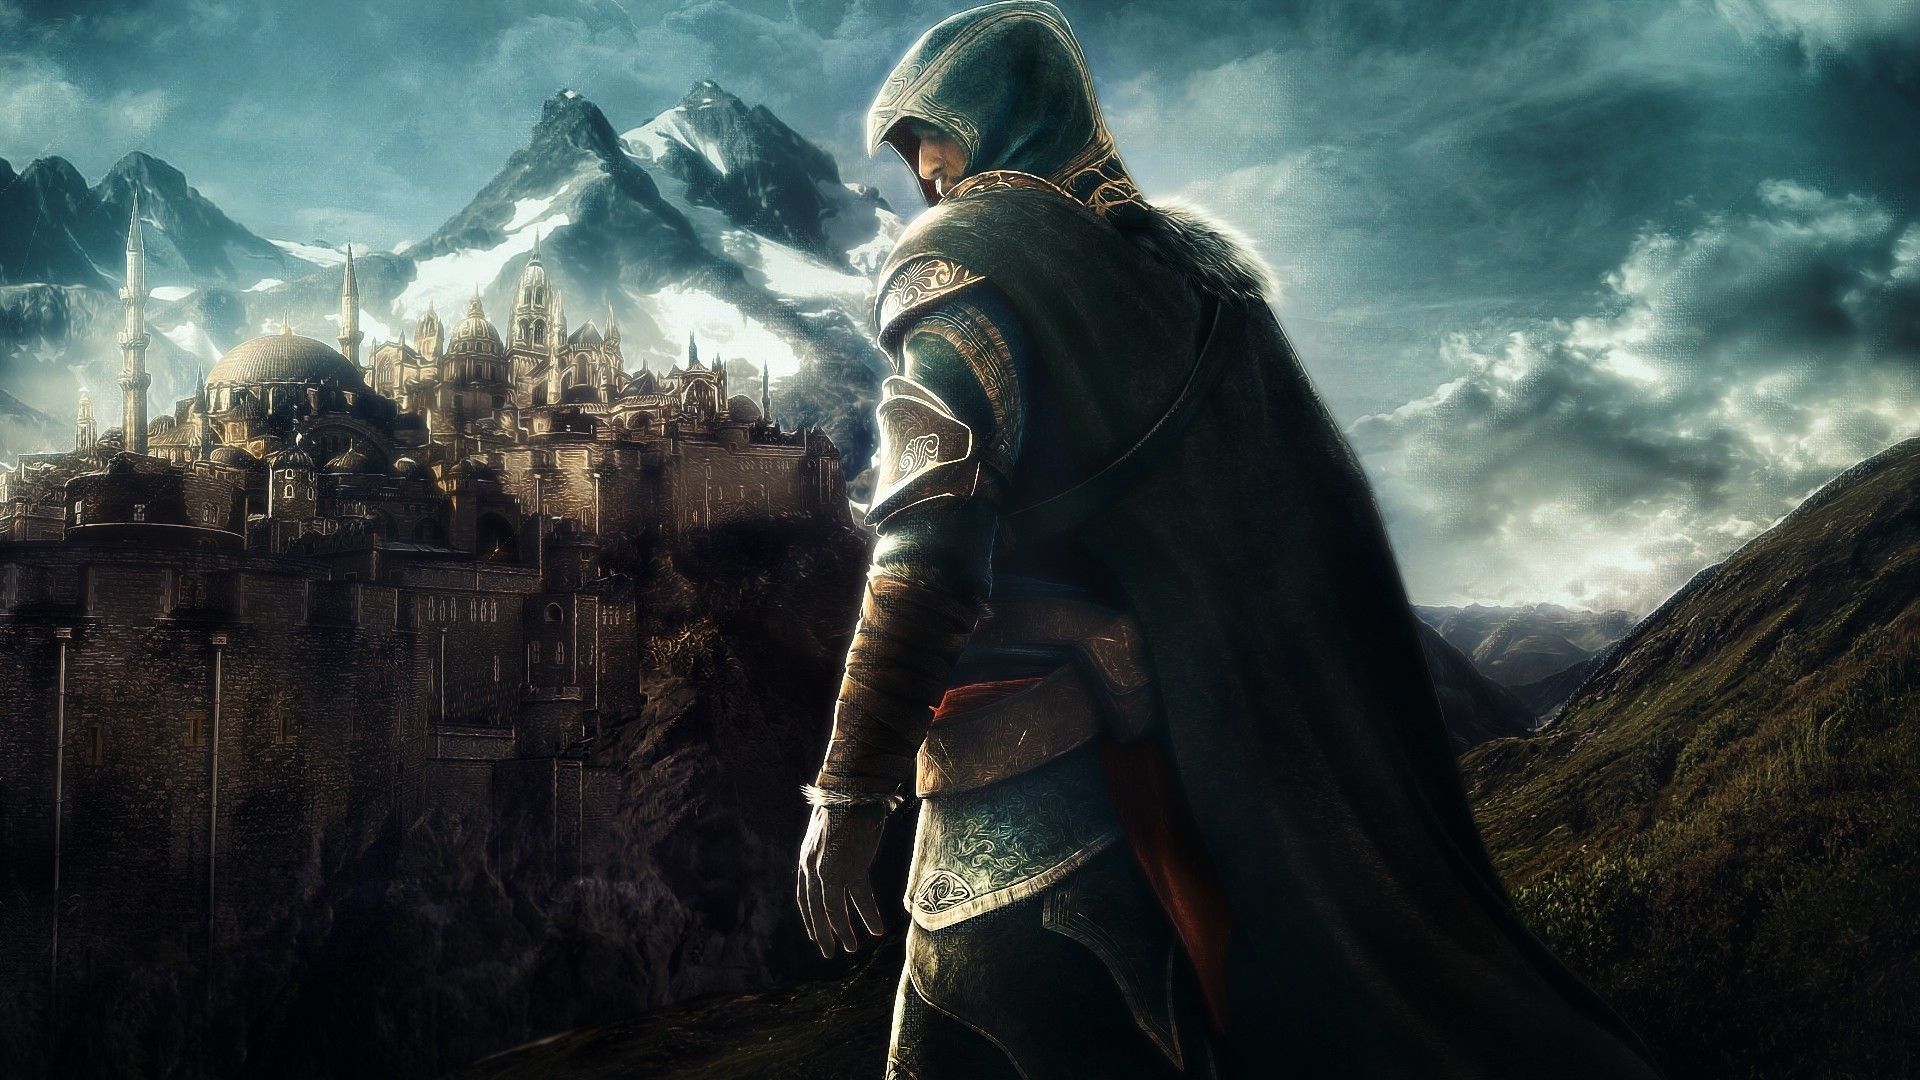 1920x1080 Hd Gaming Wallpapers 68 Images